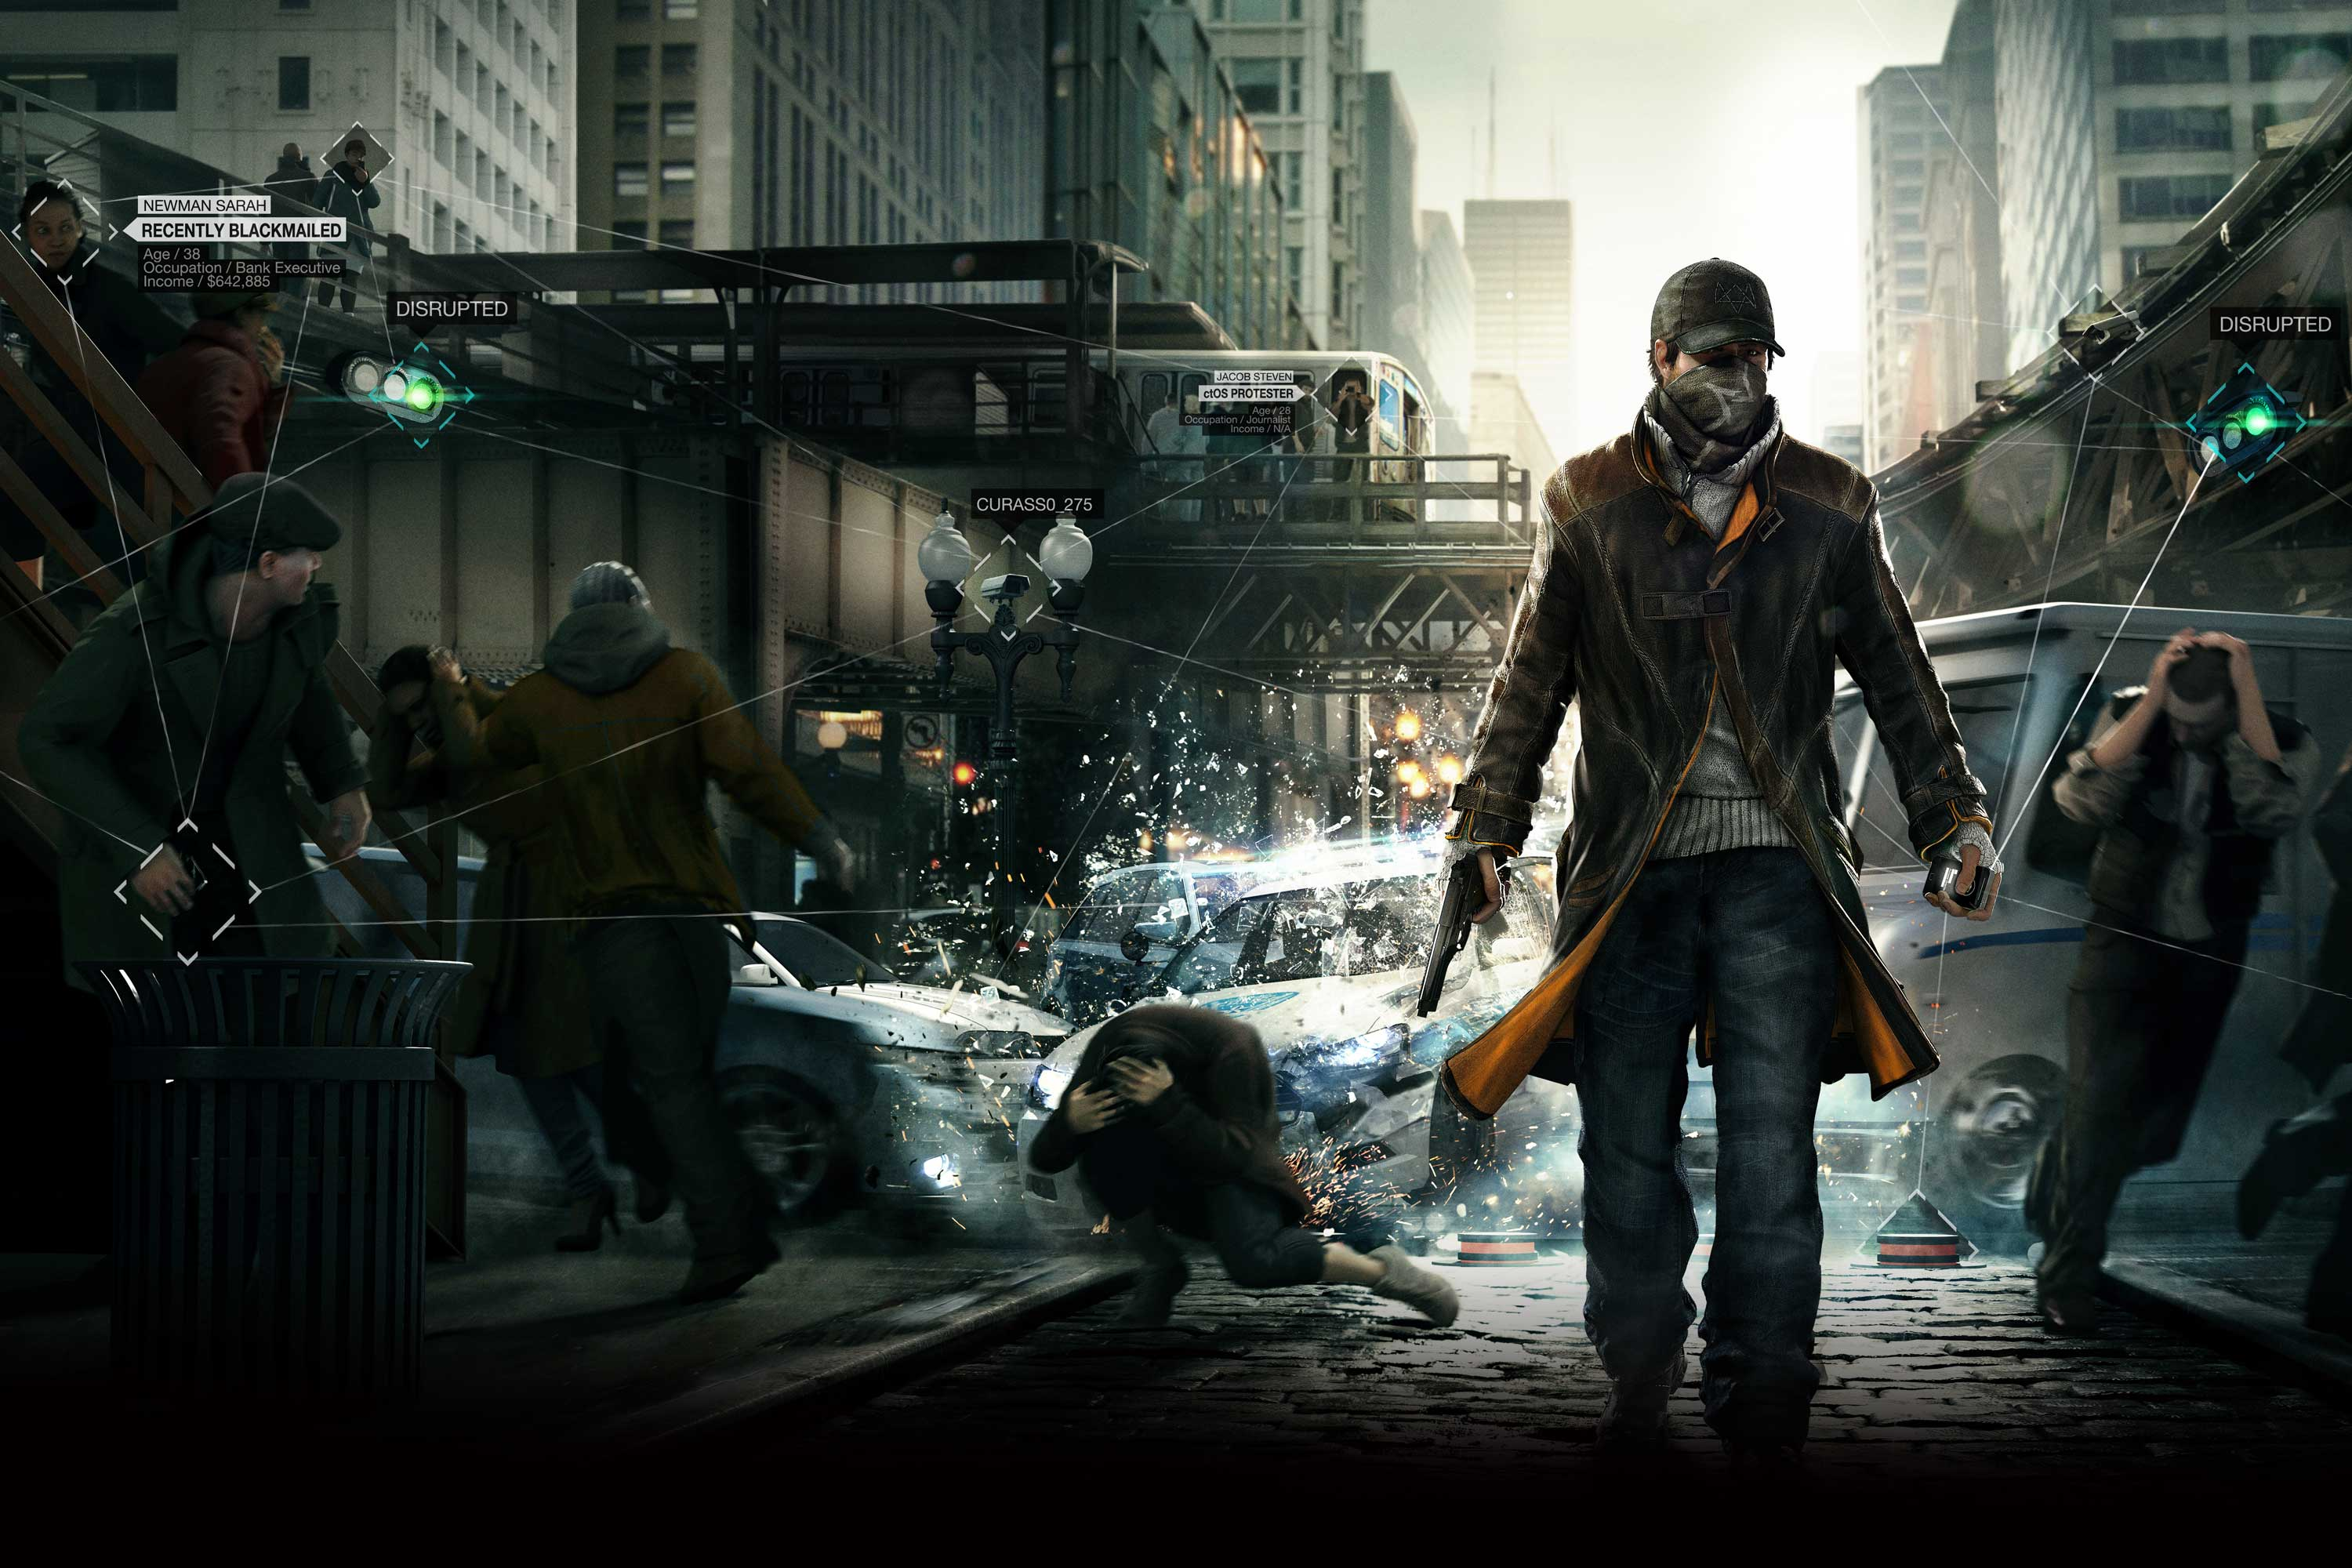 watch dogs pic